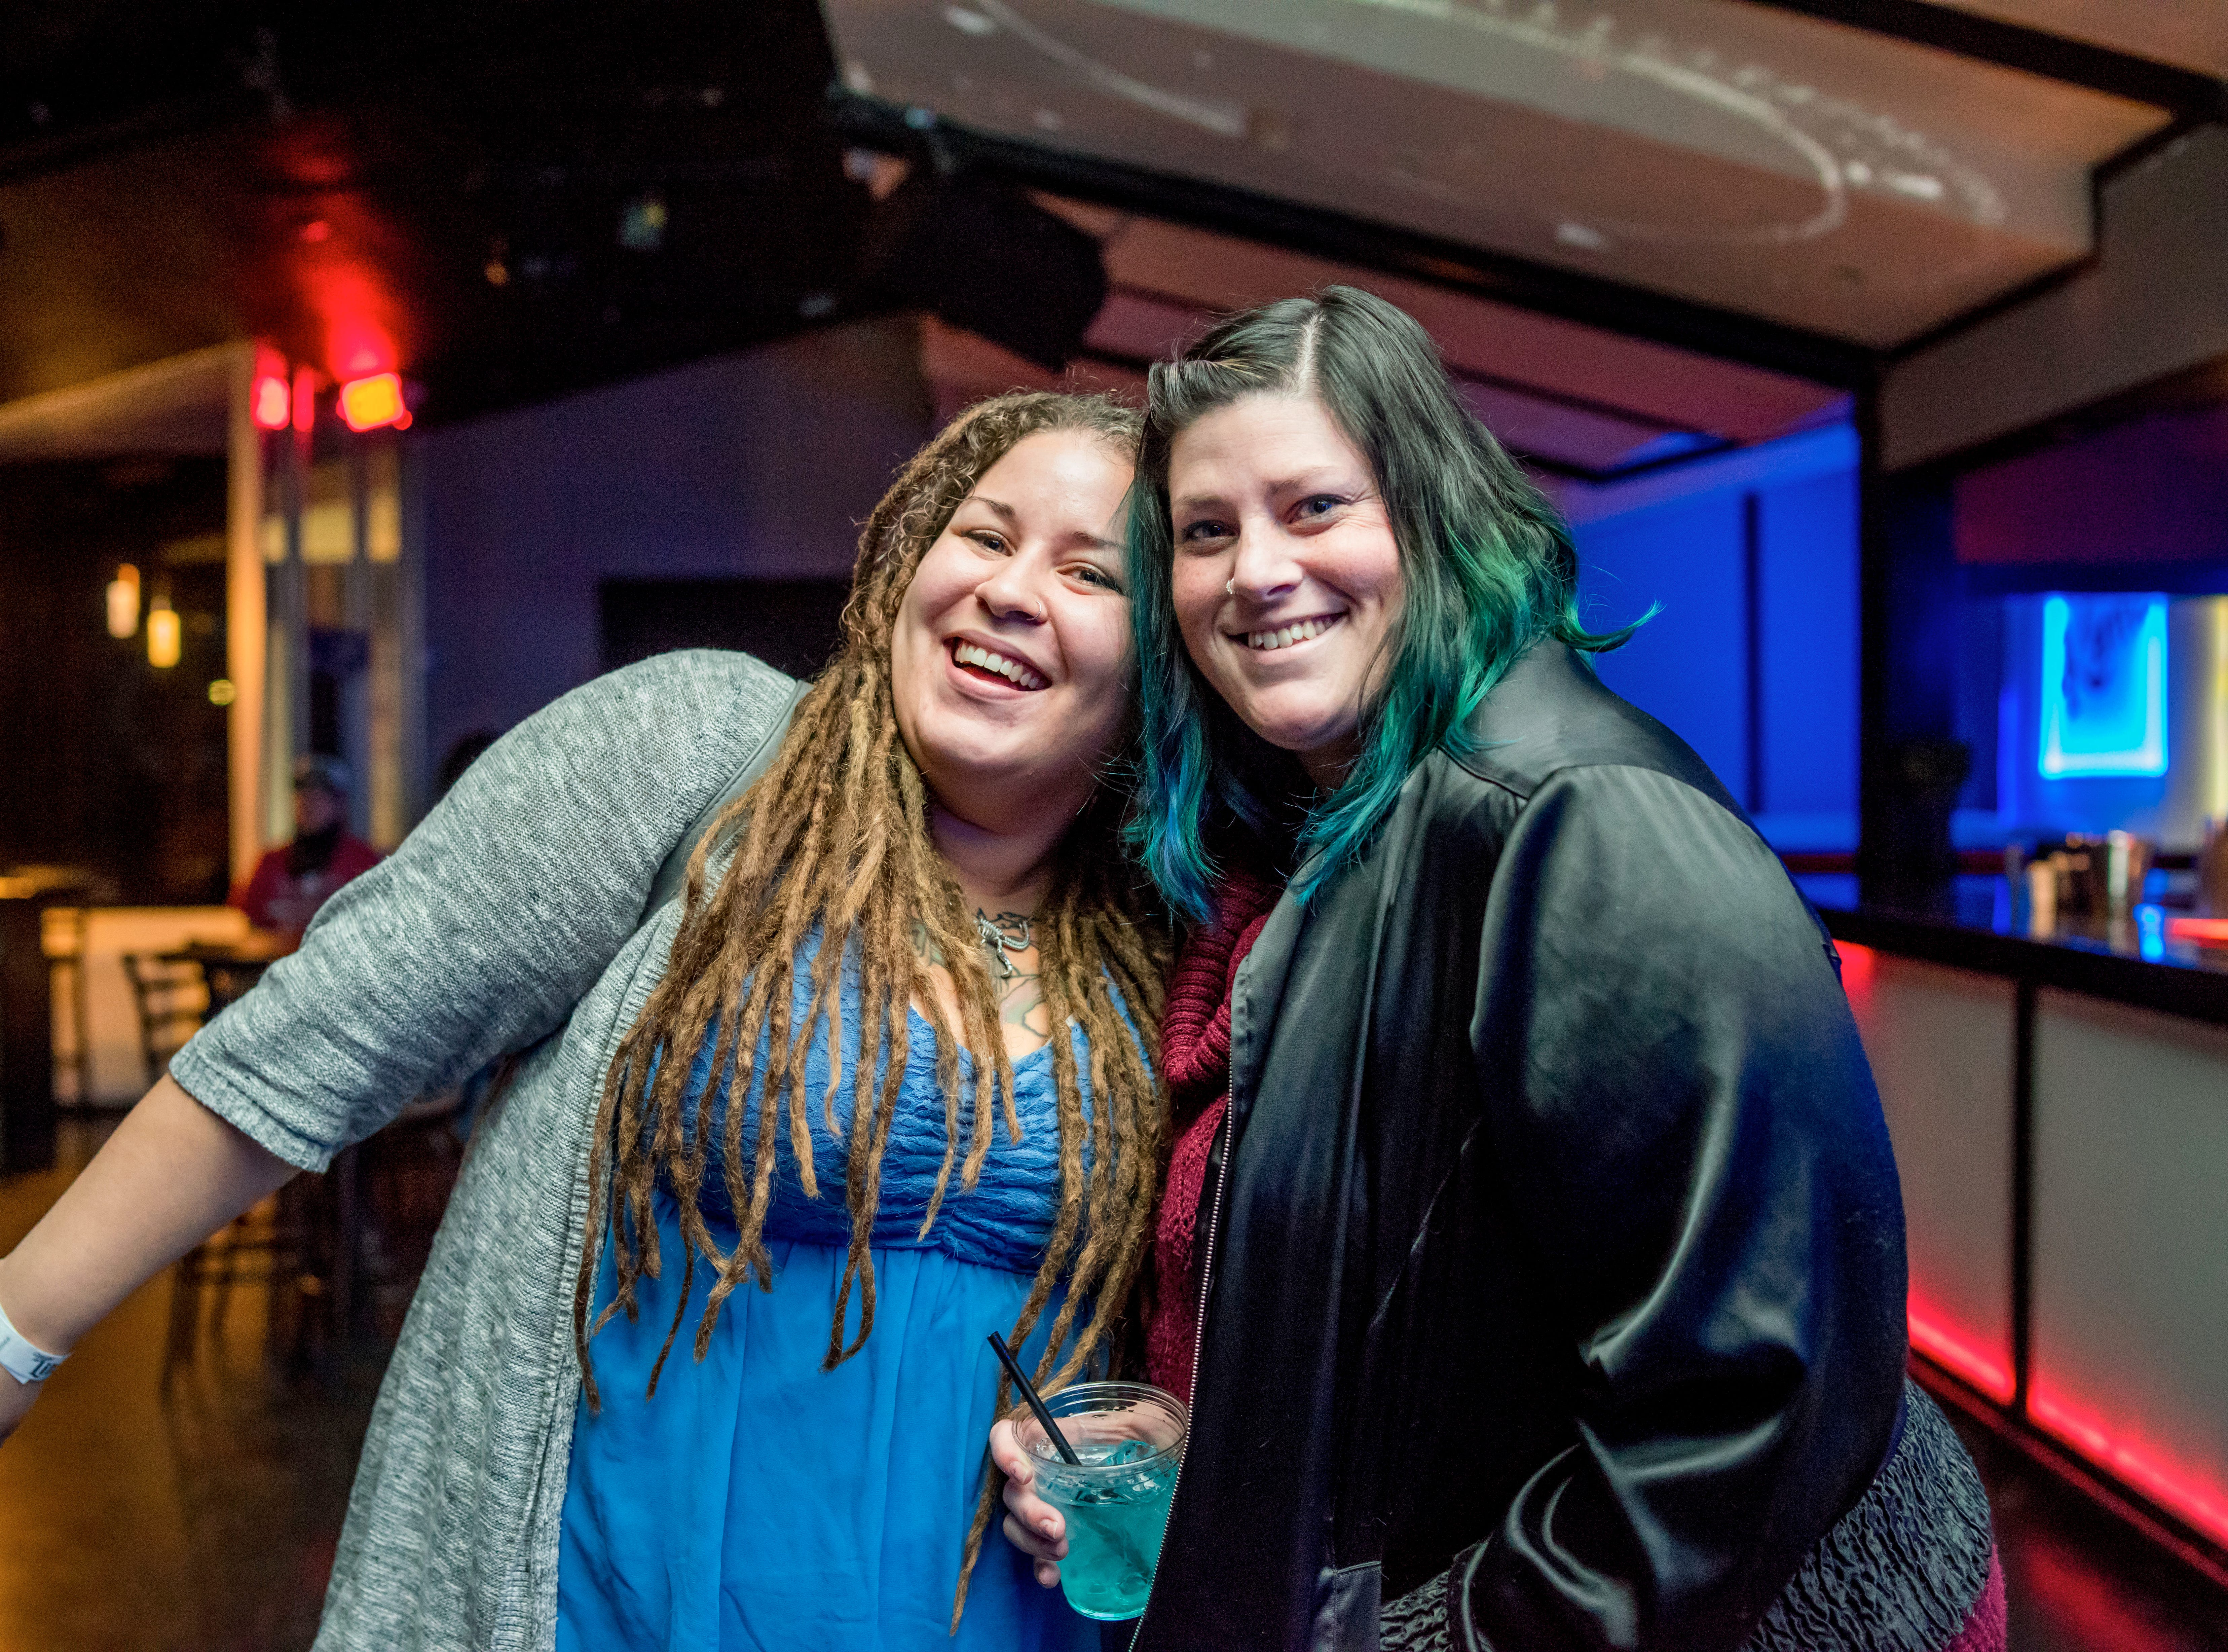 Alix Castle, 32, and Michaela Cobb, 30, both of Des Moines, enjoying their night, Friday, Dec. 7, at Beat Experiments, hosted by Karma.